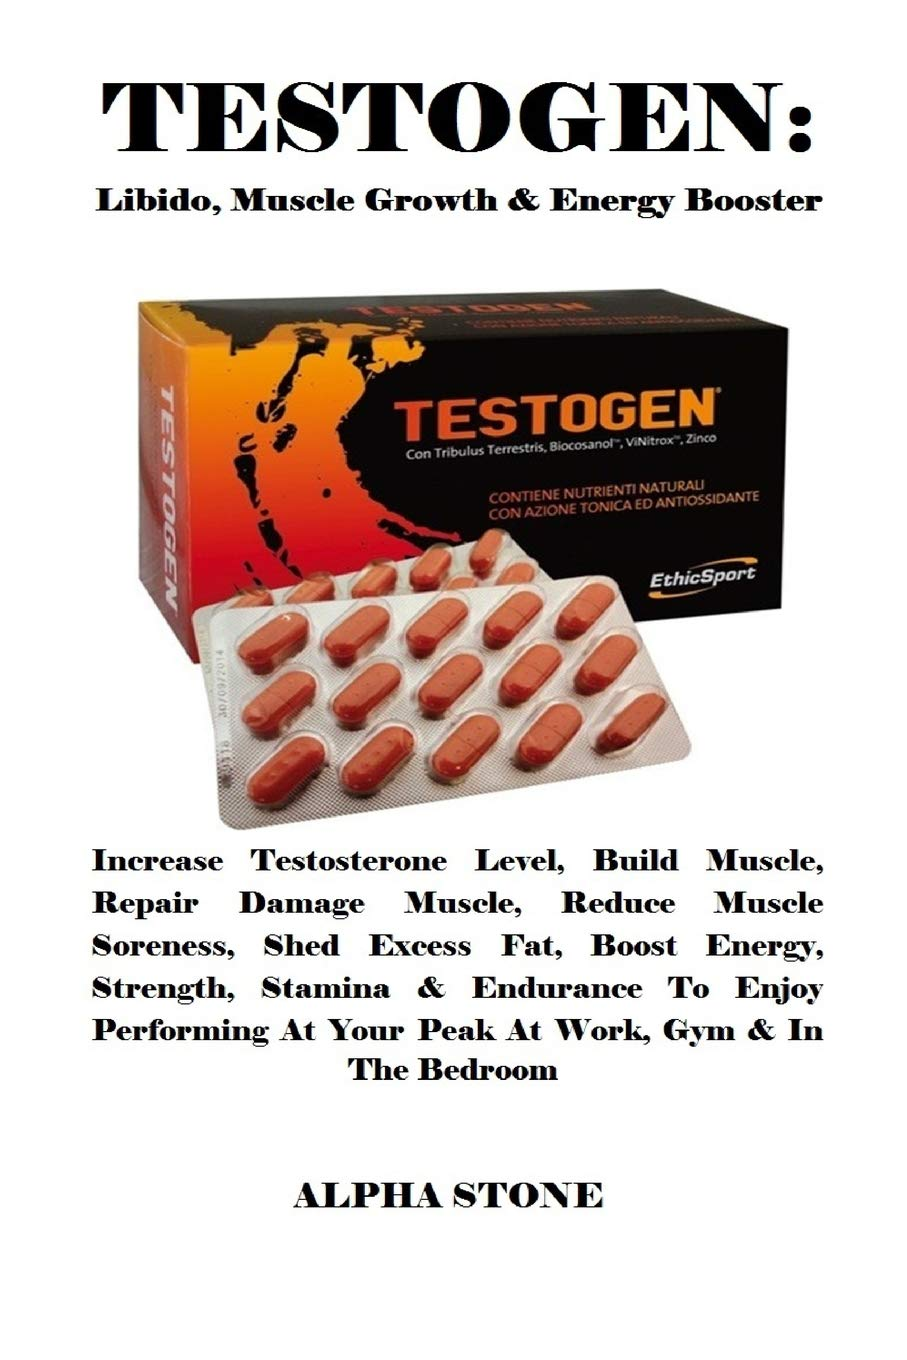 TESTOGEN: Libido, Muscle Growth & Energy Booster: Increase